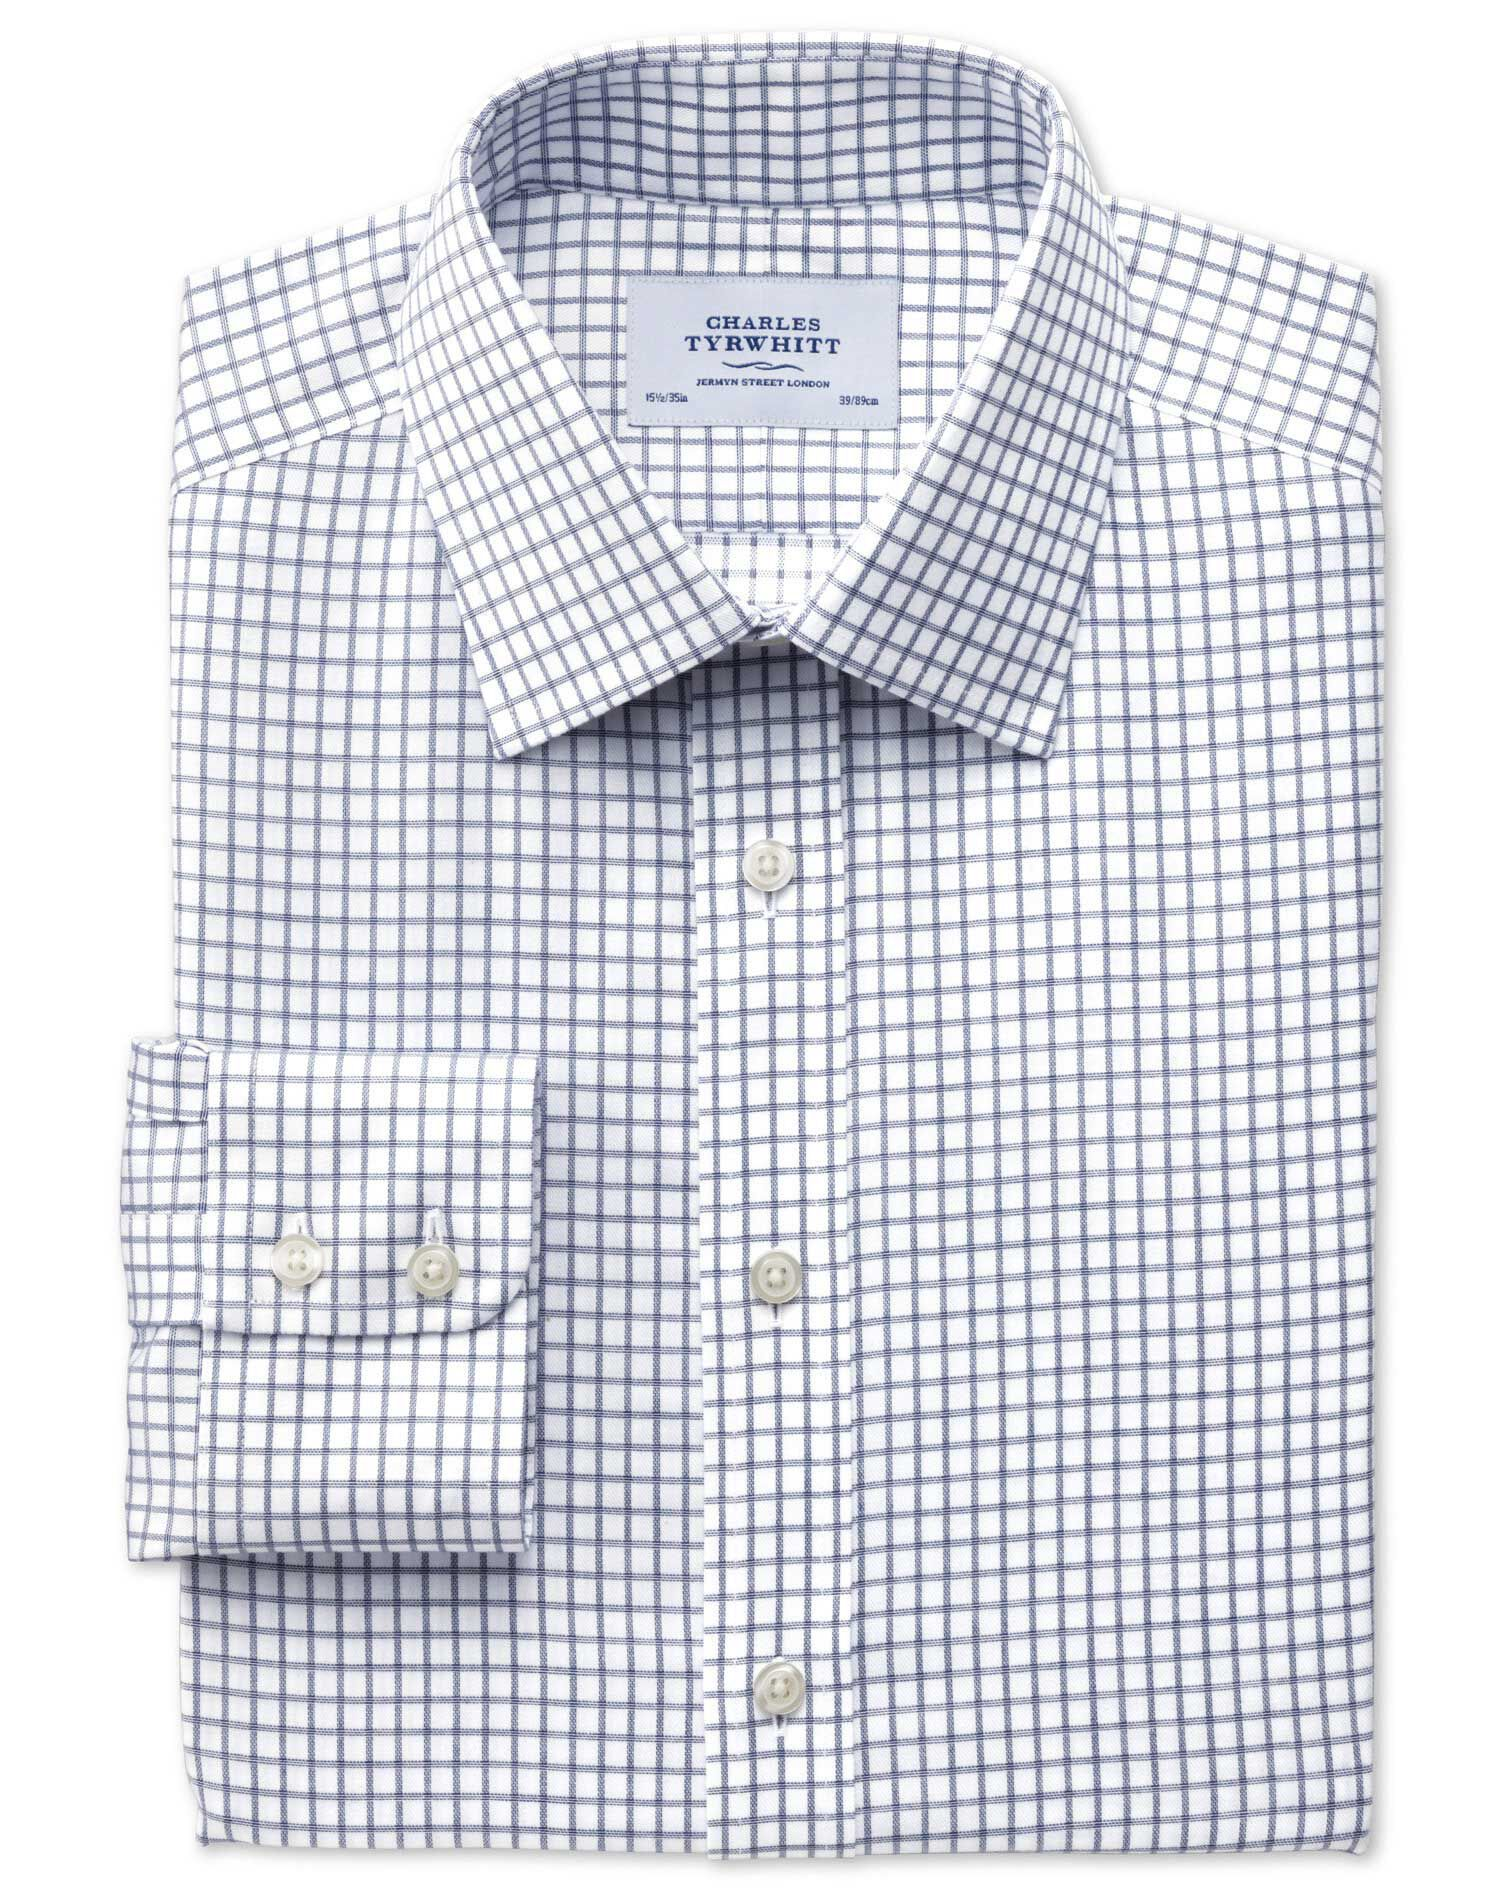 Slim Fit Non-Iron Windowpane Check Indigo Cotton Formal Shirt Single Cuff Size 18/37 by Charles Tyrw